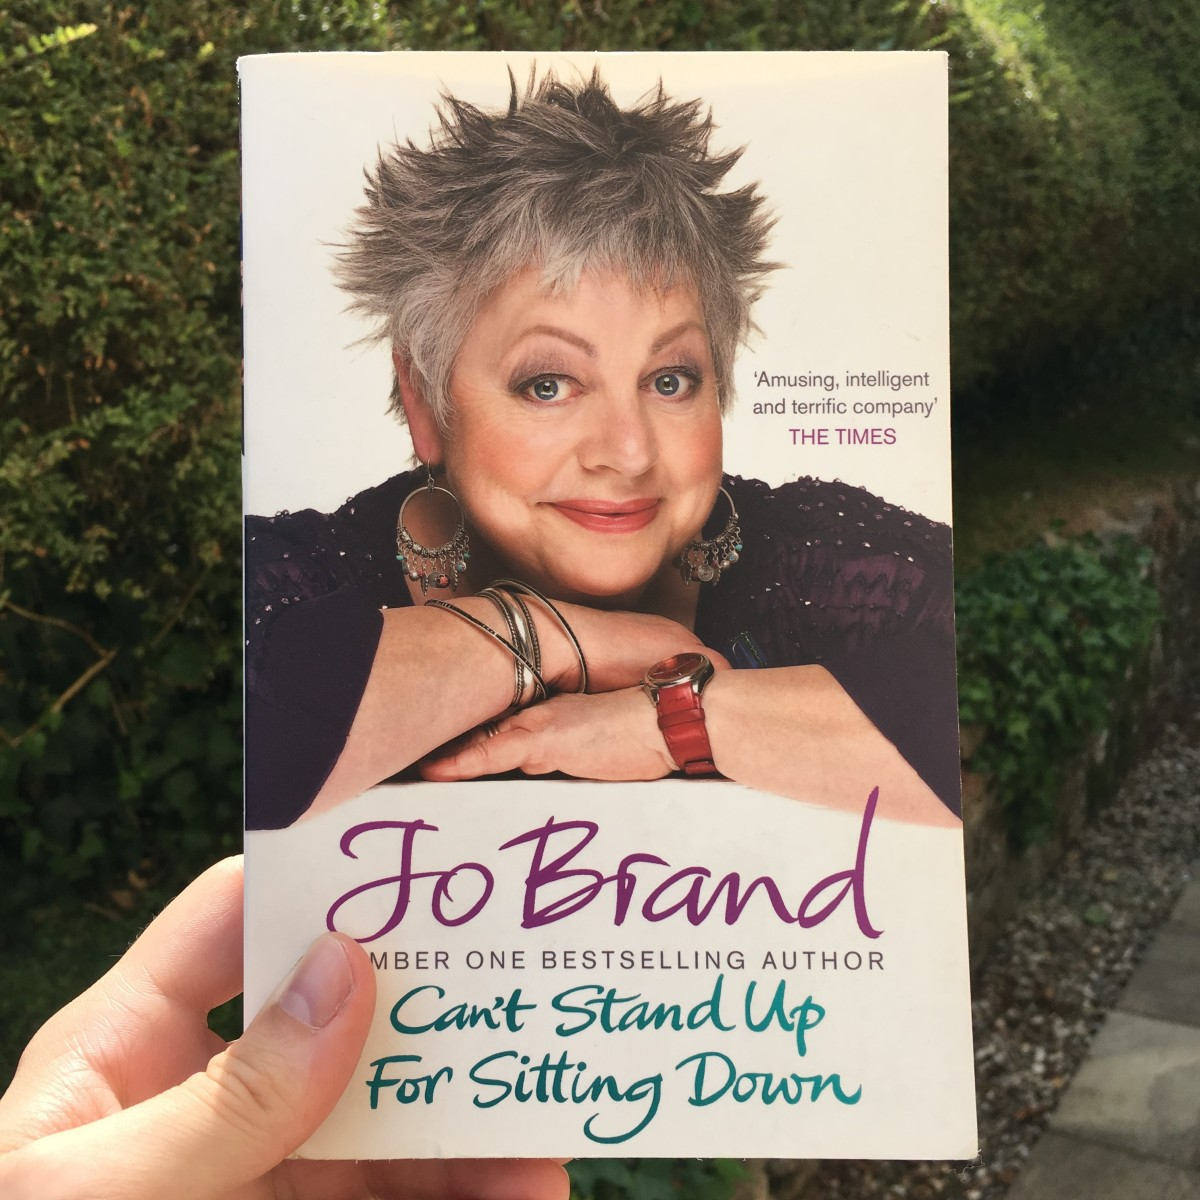 Jo Brand's Can't Stand Up For Sitting Down